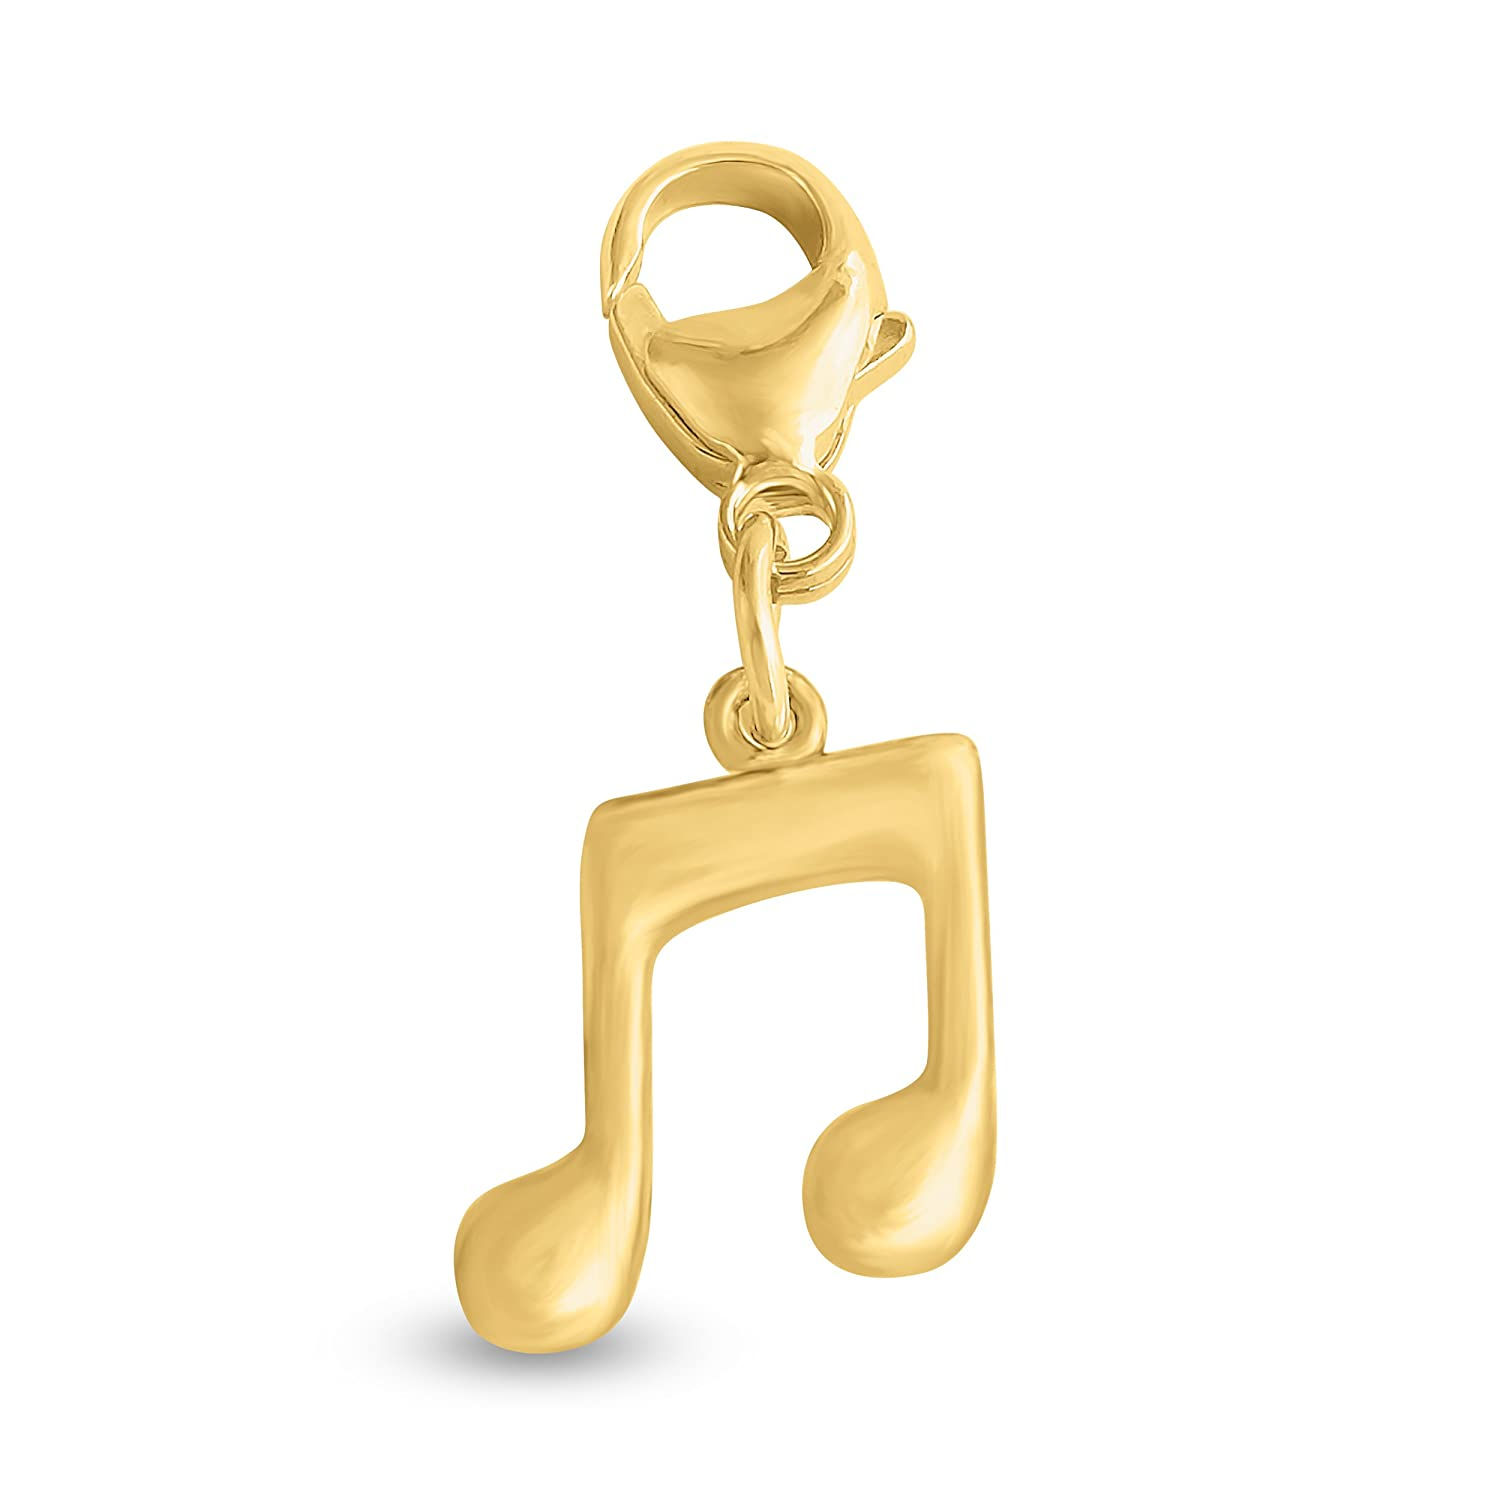 Azaggi Gold Plated Sterling Silver Handcrafted Musician Present Musical Note Pendant With Lobster Claw Clasp P0268S/_pc